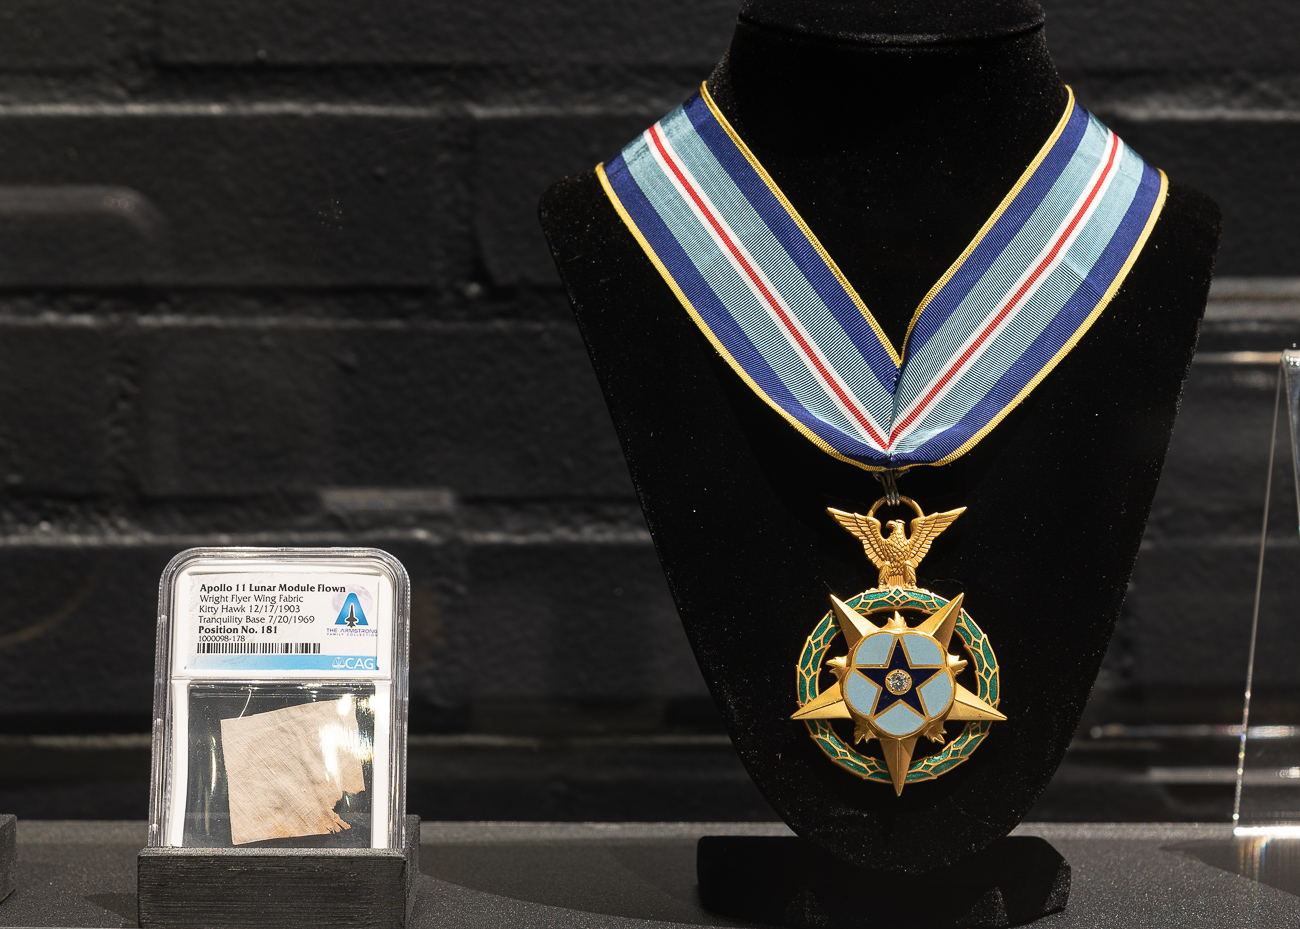 (LEFT) A piece of fabric from the Wright Flyer—the world's first airplane. It accompanied Neil Armstrong to the moon as a symbol of humankind's aerial achievement. (RIGHT) The Congressional Space Medal of Honor, awarded by President Jimmy Carter to Neil Armstrong. / Image: Phil Armstrong, Cincinnati Refined // Published: 10.2.19